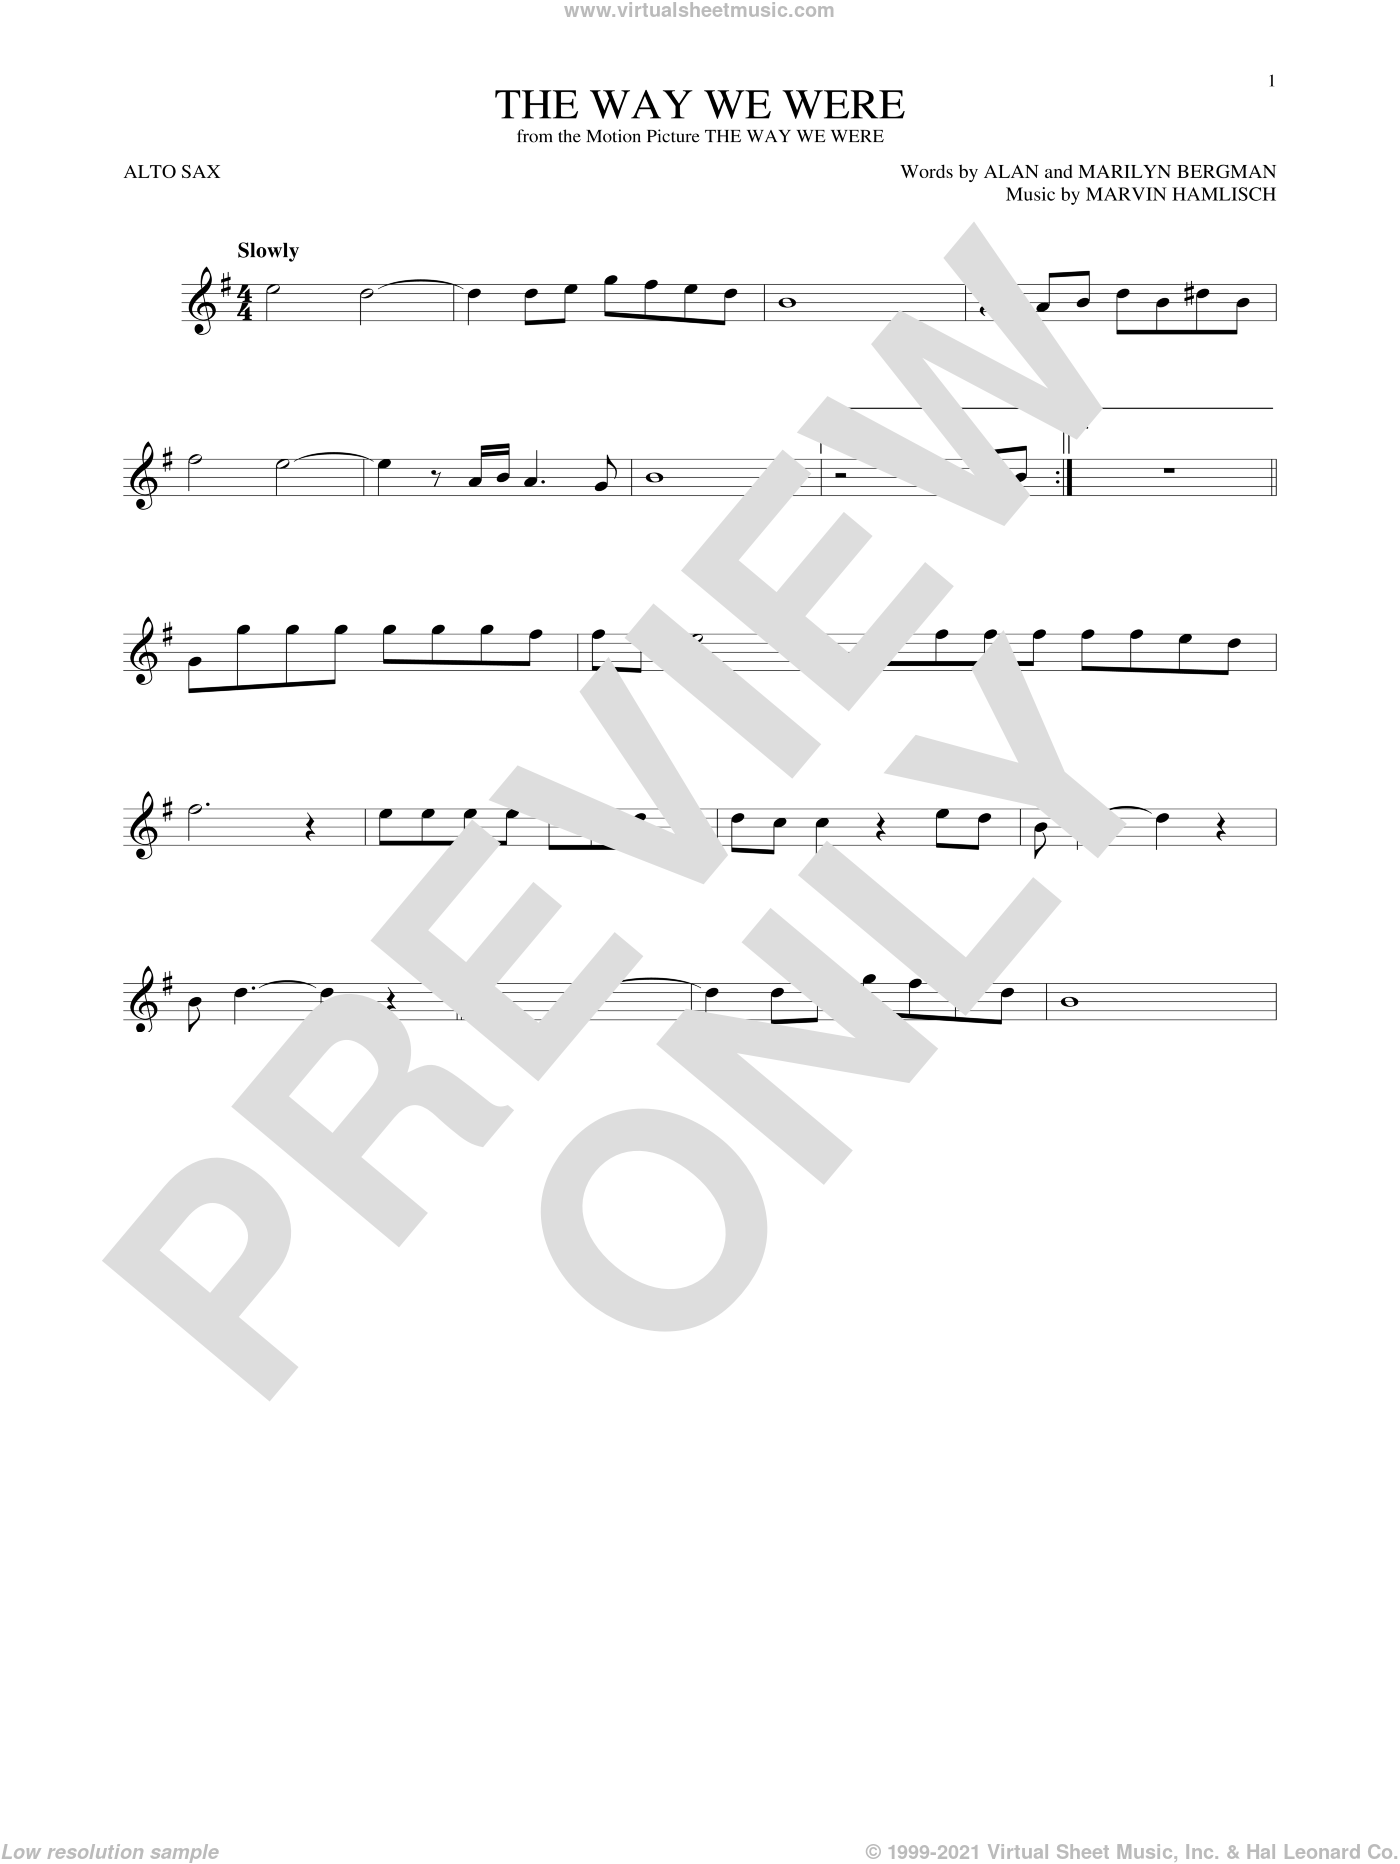 The Way We Were sheet music for alto saxophone solo ( Sax) by Barbra Streisand, Alan Bergman, Marilyn Bergman and Marvin Hamlisch, intermediate alto saxophone ( Sax). Score Image Preview.